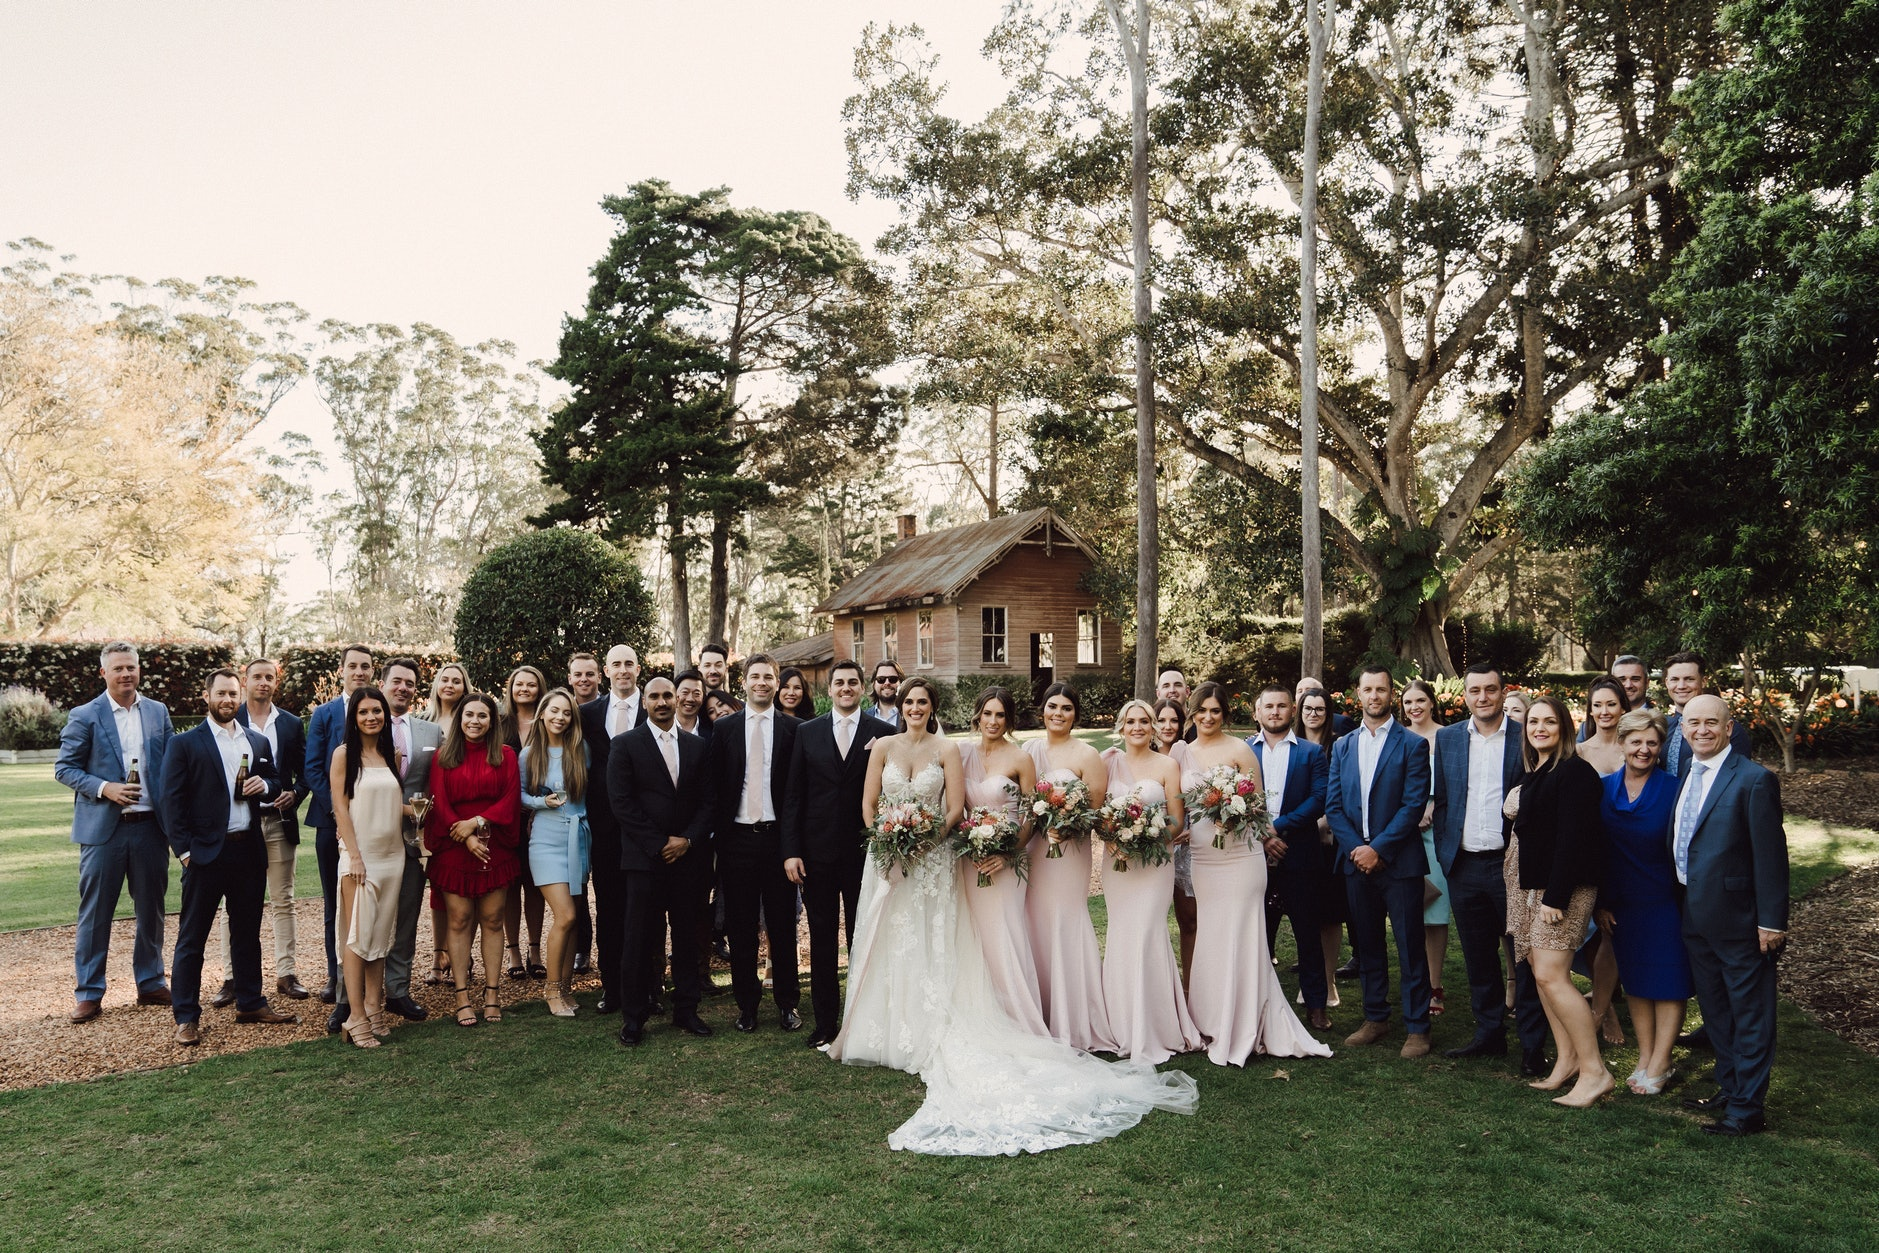 Group shot in gardens of all wedding guests